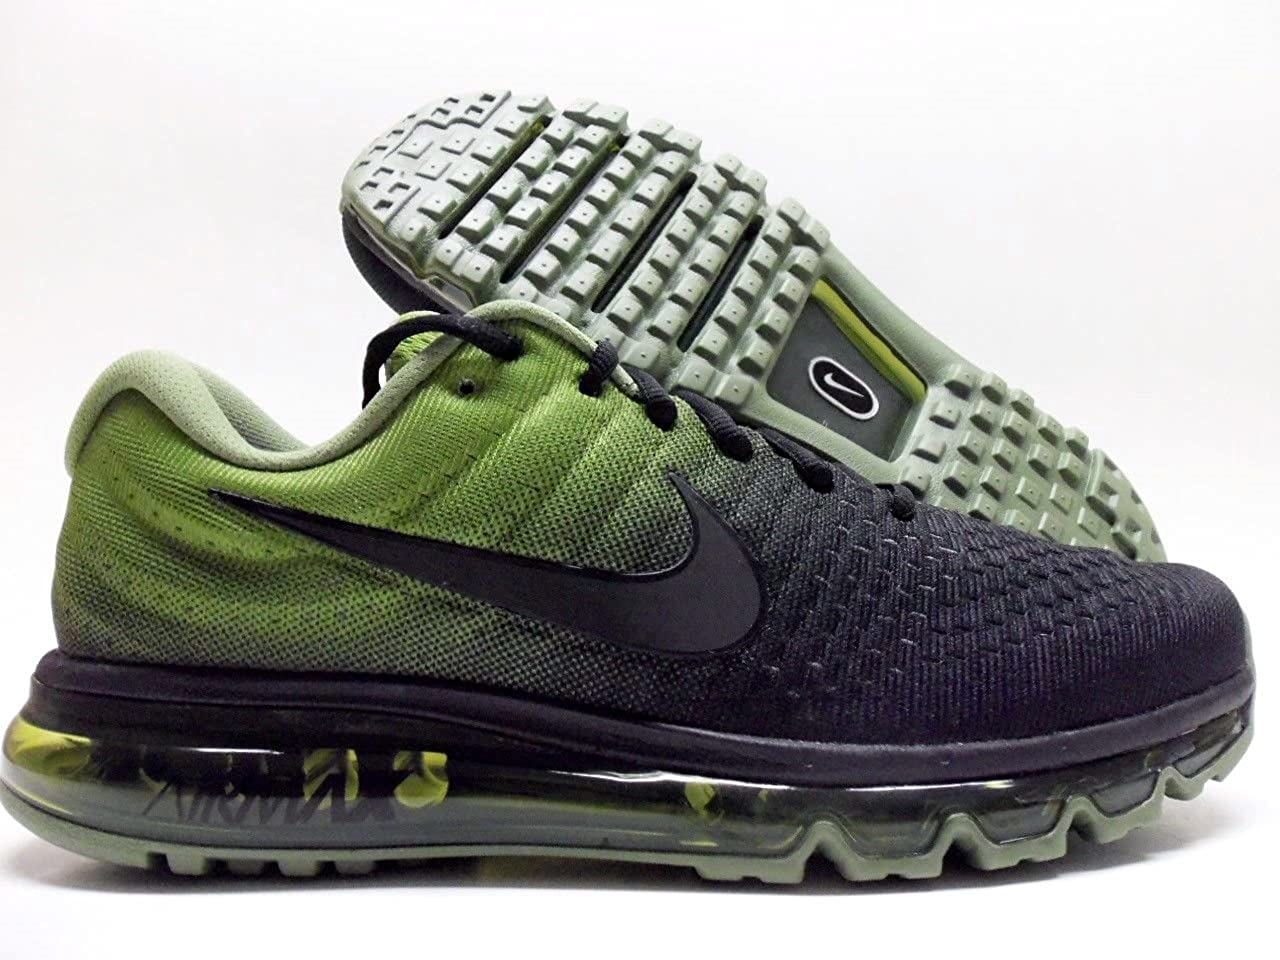 size 40 ce6f5 55f83 Amazon.com | NIKE AIR Max 2017 New Black/Green [ 849559-006 ...